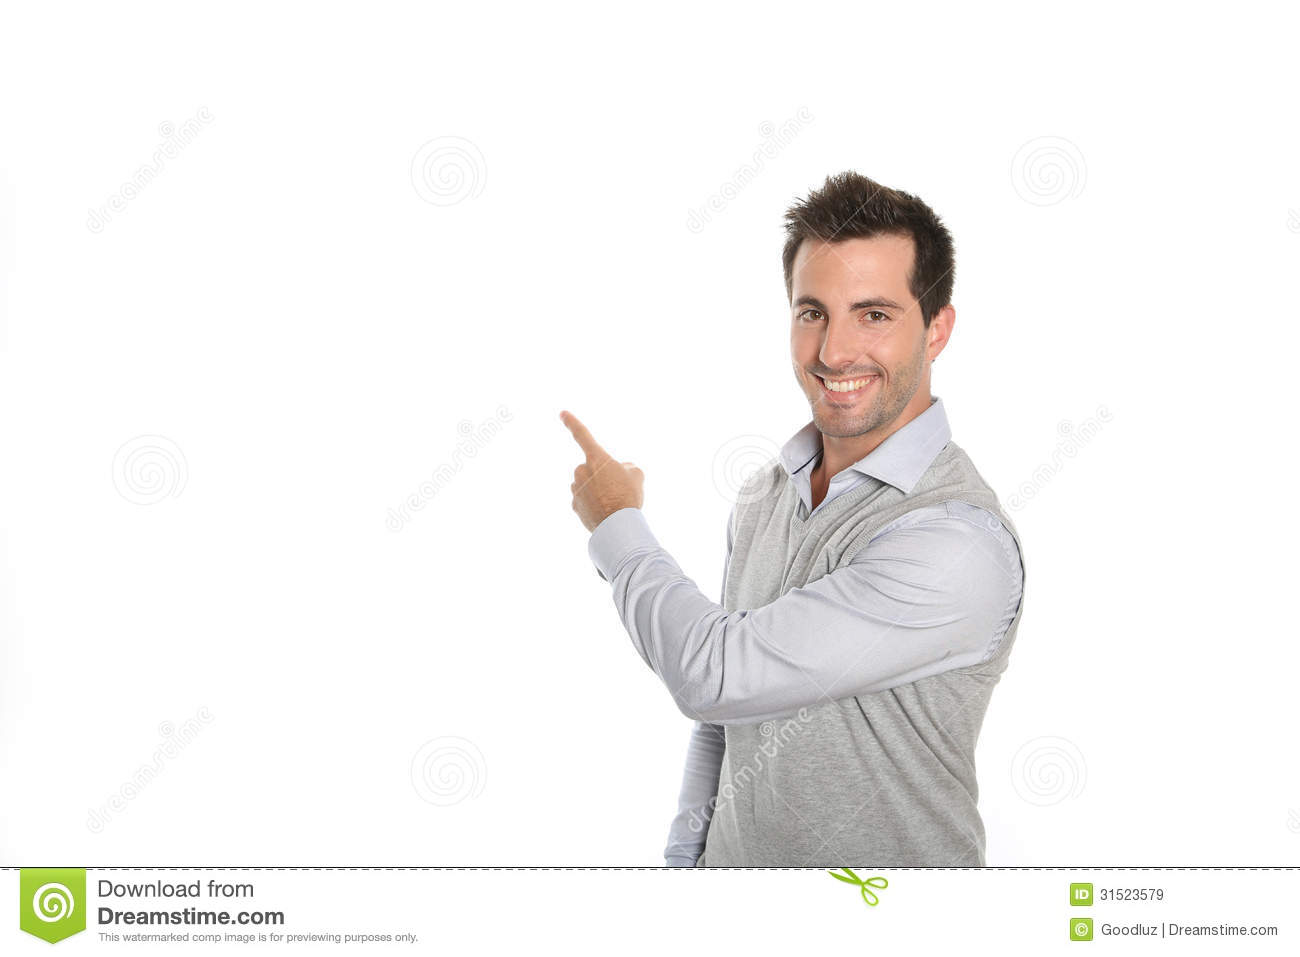 man presenting text or graphic on white background stock